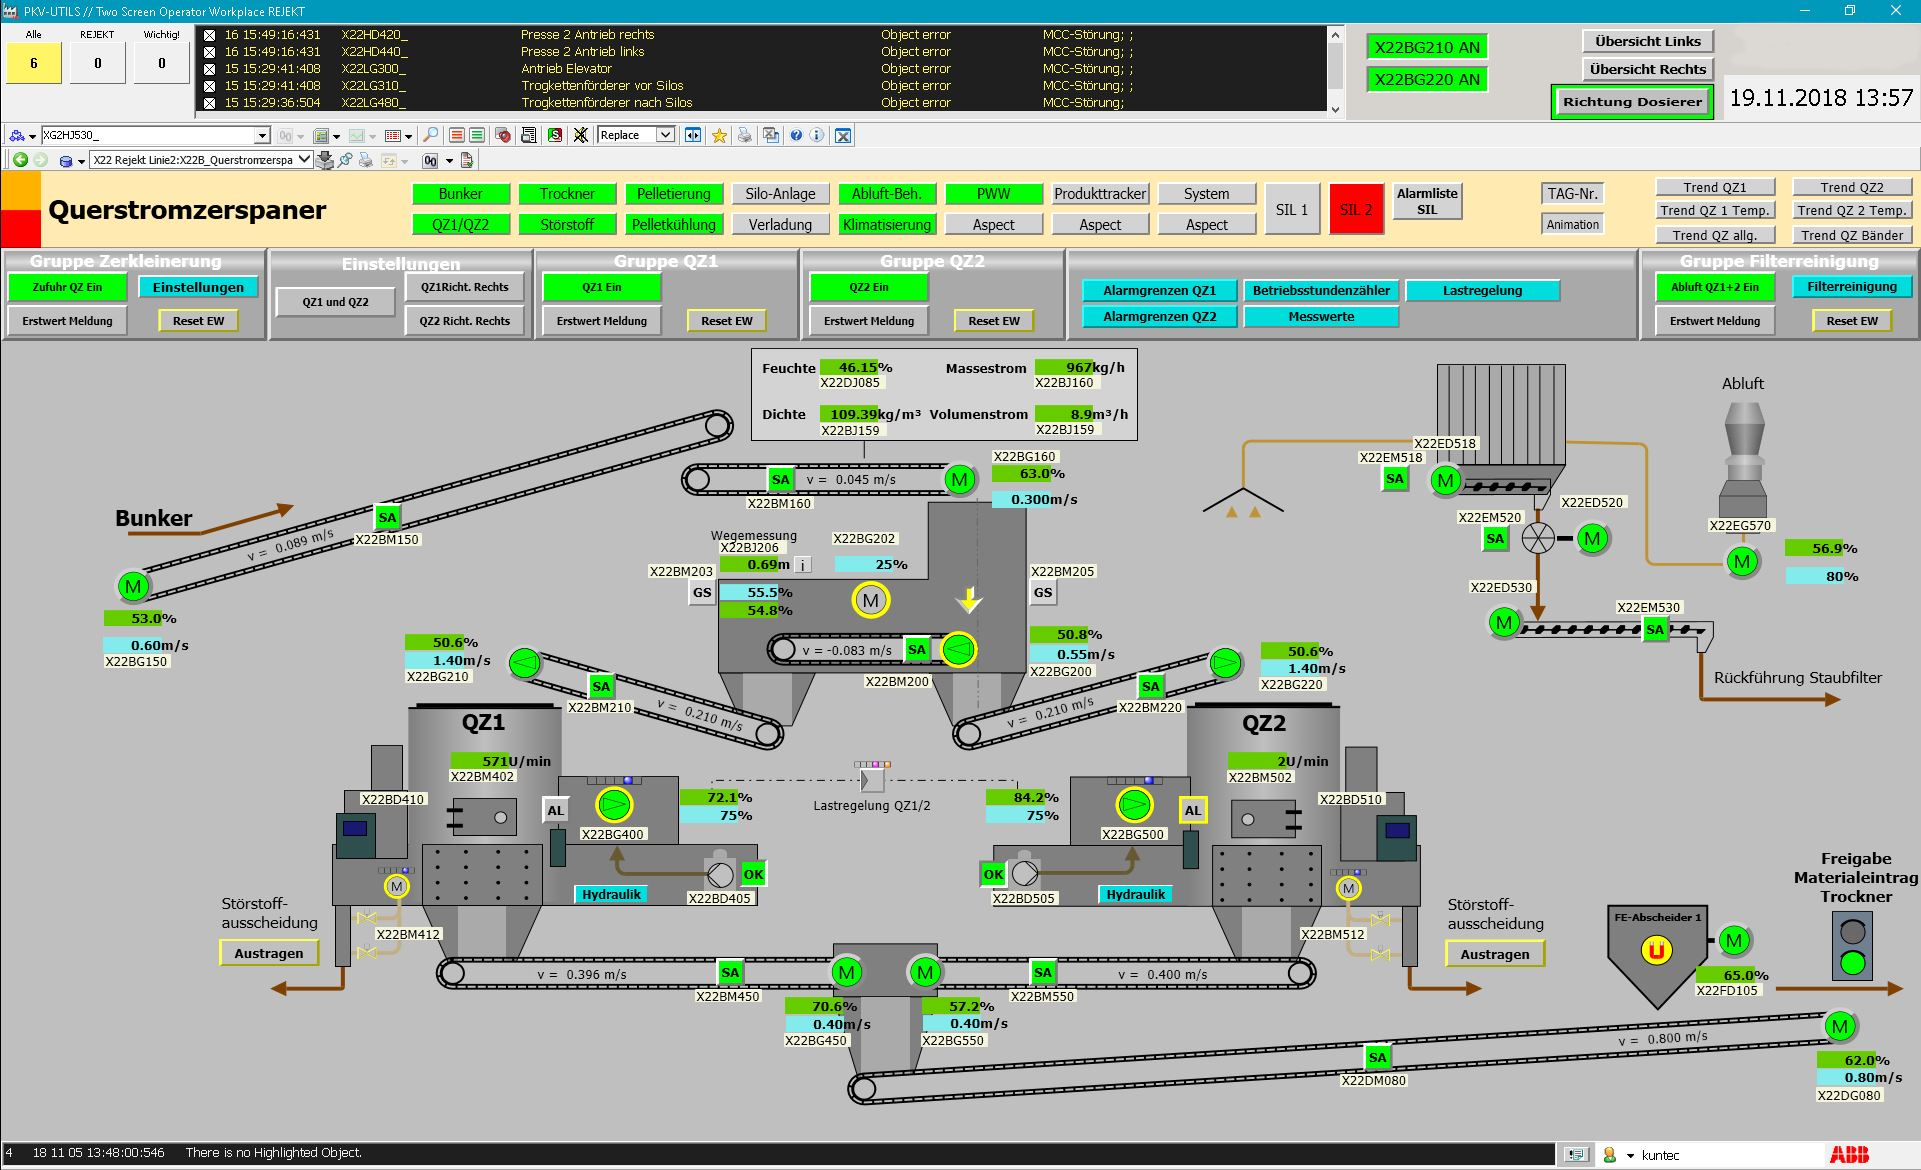 ABB user interface